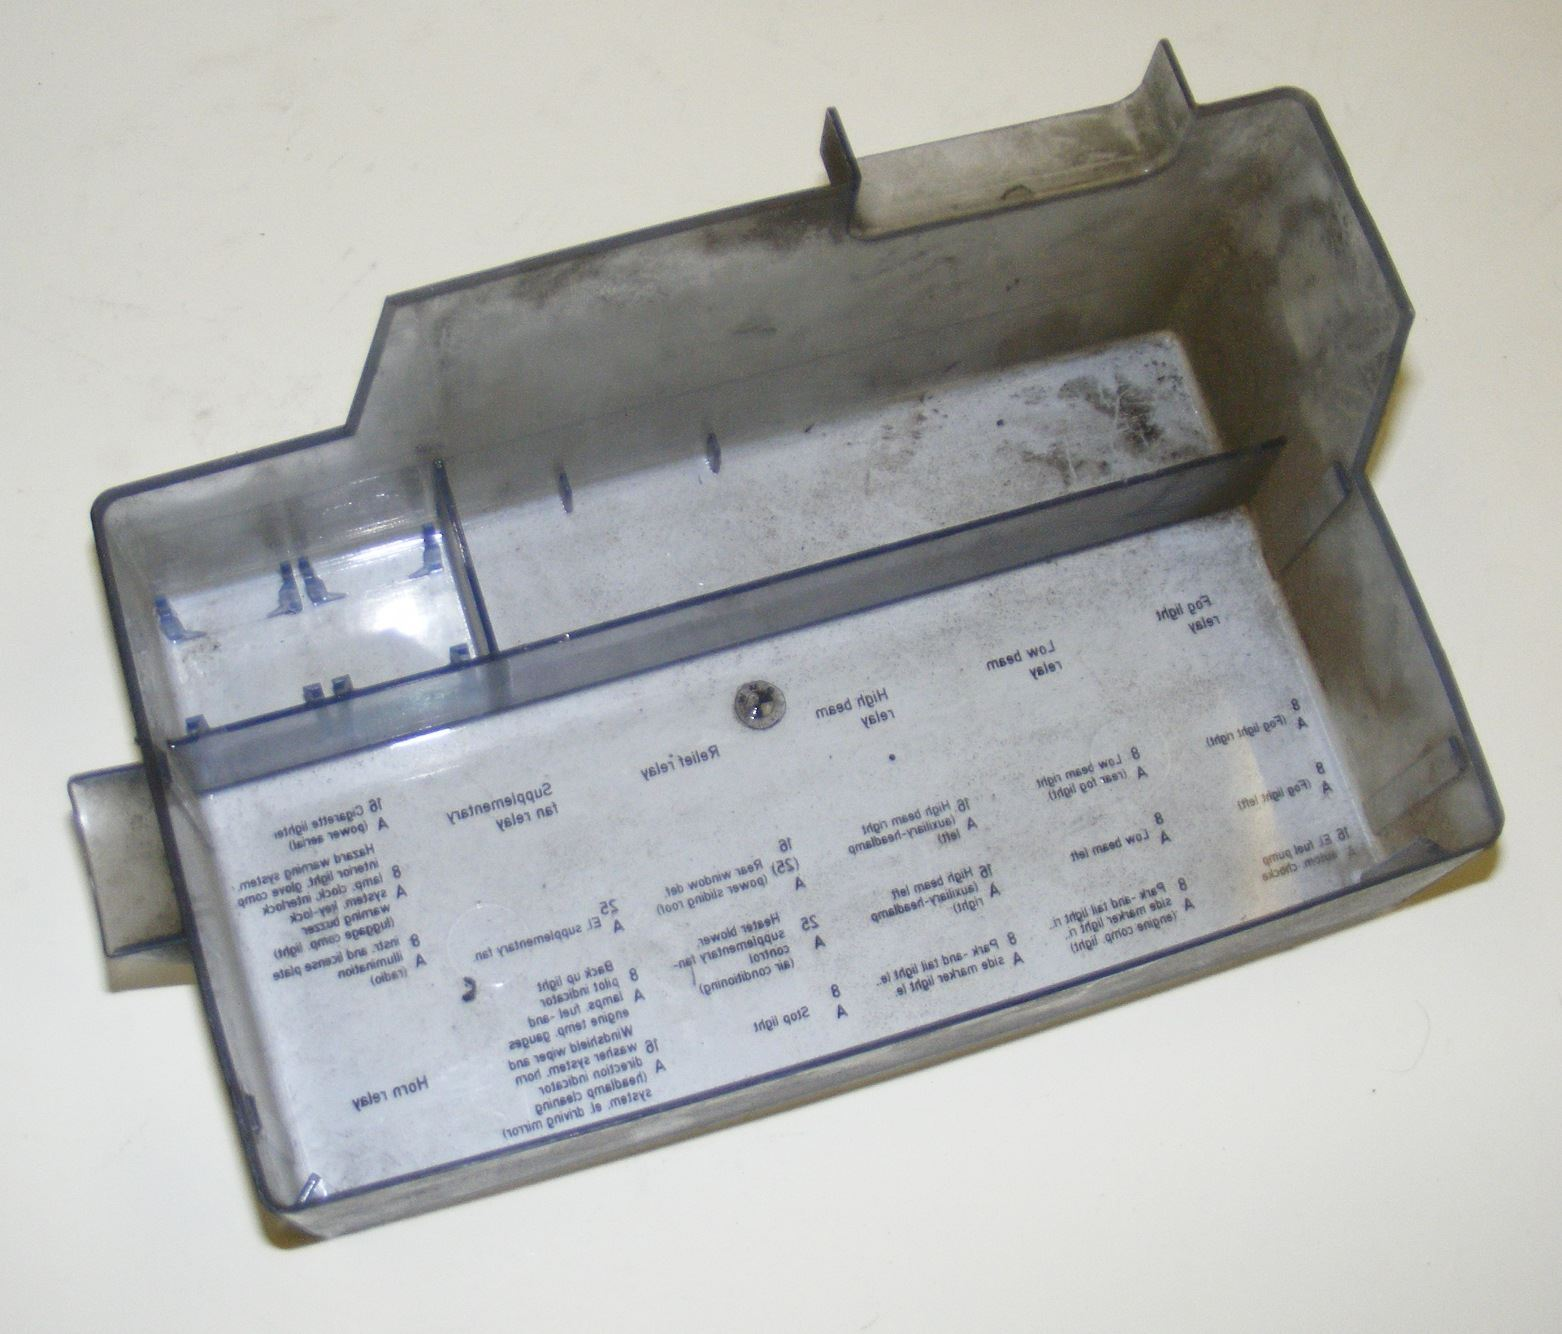 ... 61131369605 Picture of bmw fuse box, 61131369605